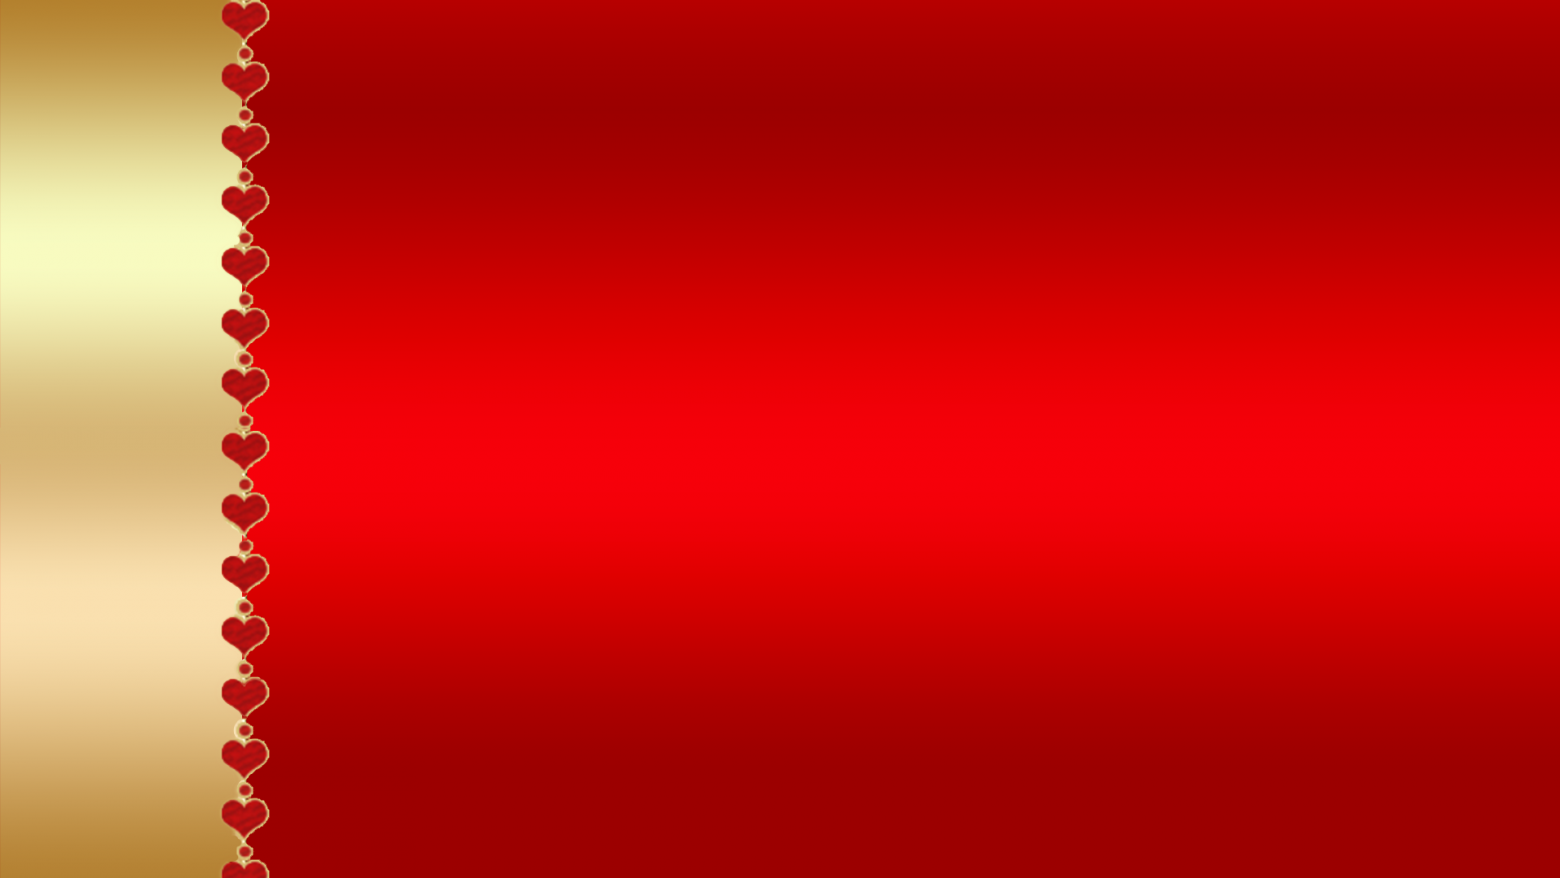 Gold And Red Backgrounds: Red Gold Hearts Background Wallpaper Design